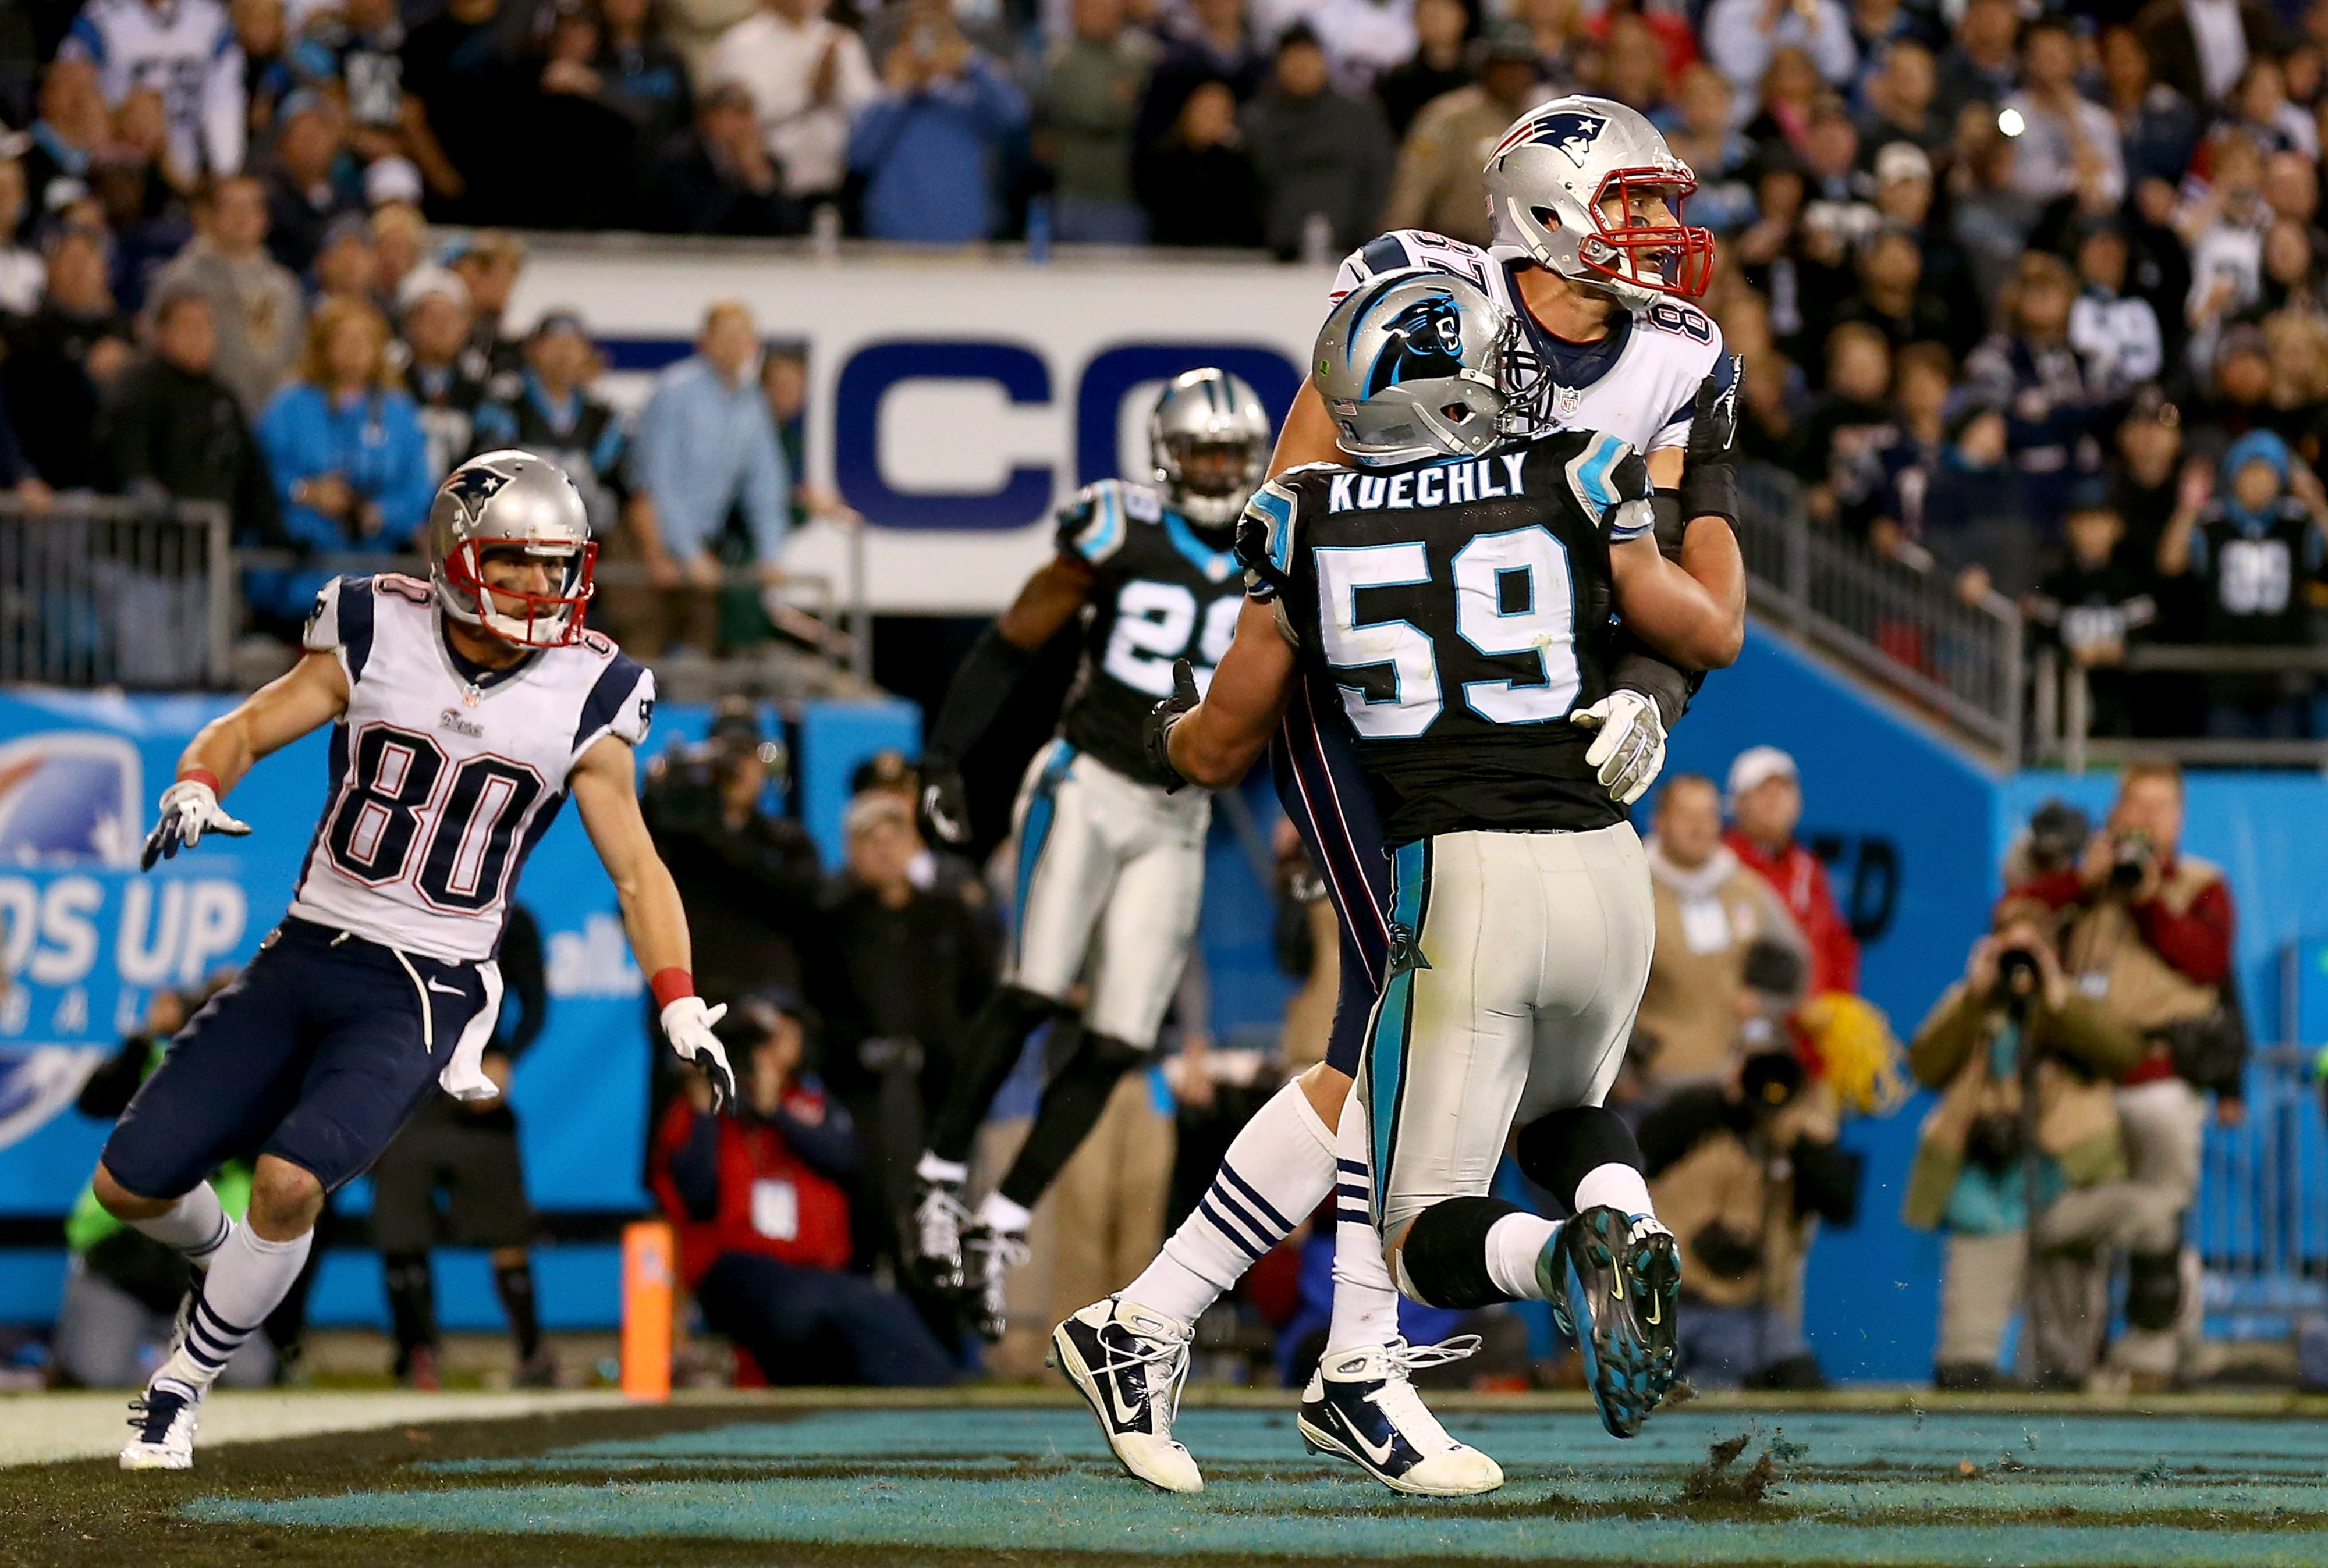 Patriots vs. Panthers 2013, Week 11: Carolina beats New England in Monday Night Football thriller